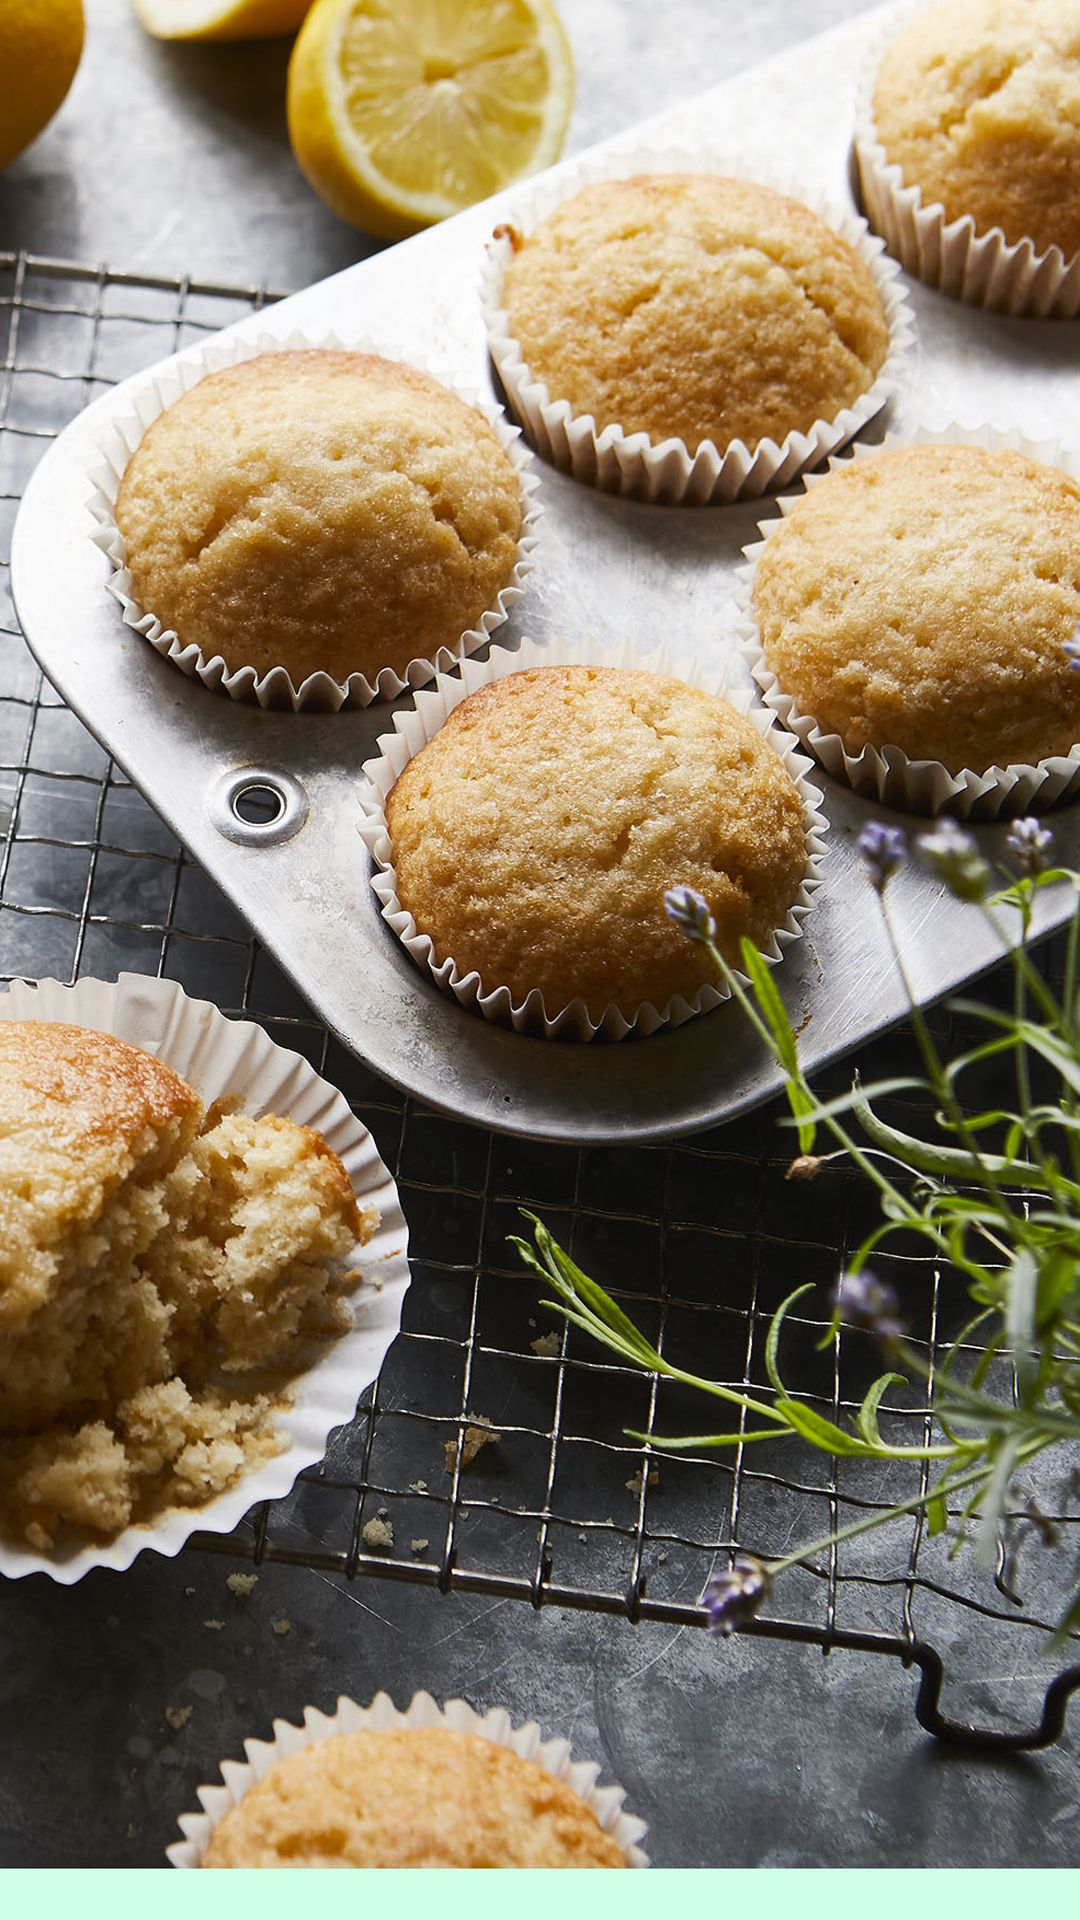 Lemon Muffins Recipe Recipe In 2020 Lemon Muffins Delish Cakes Easy Cake Recipes